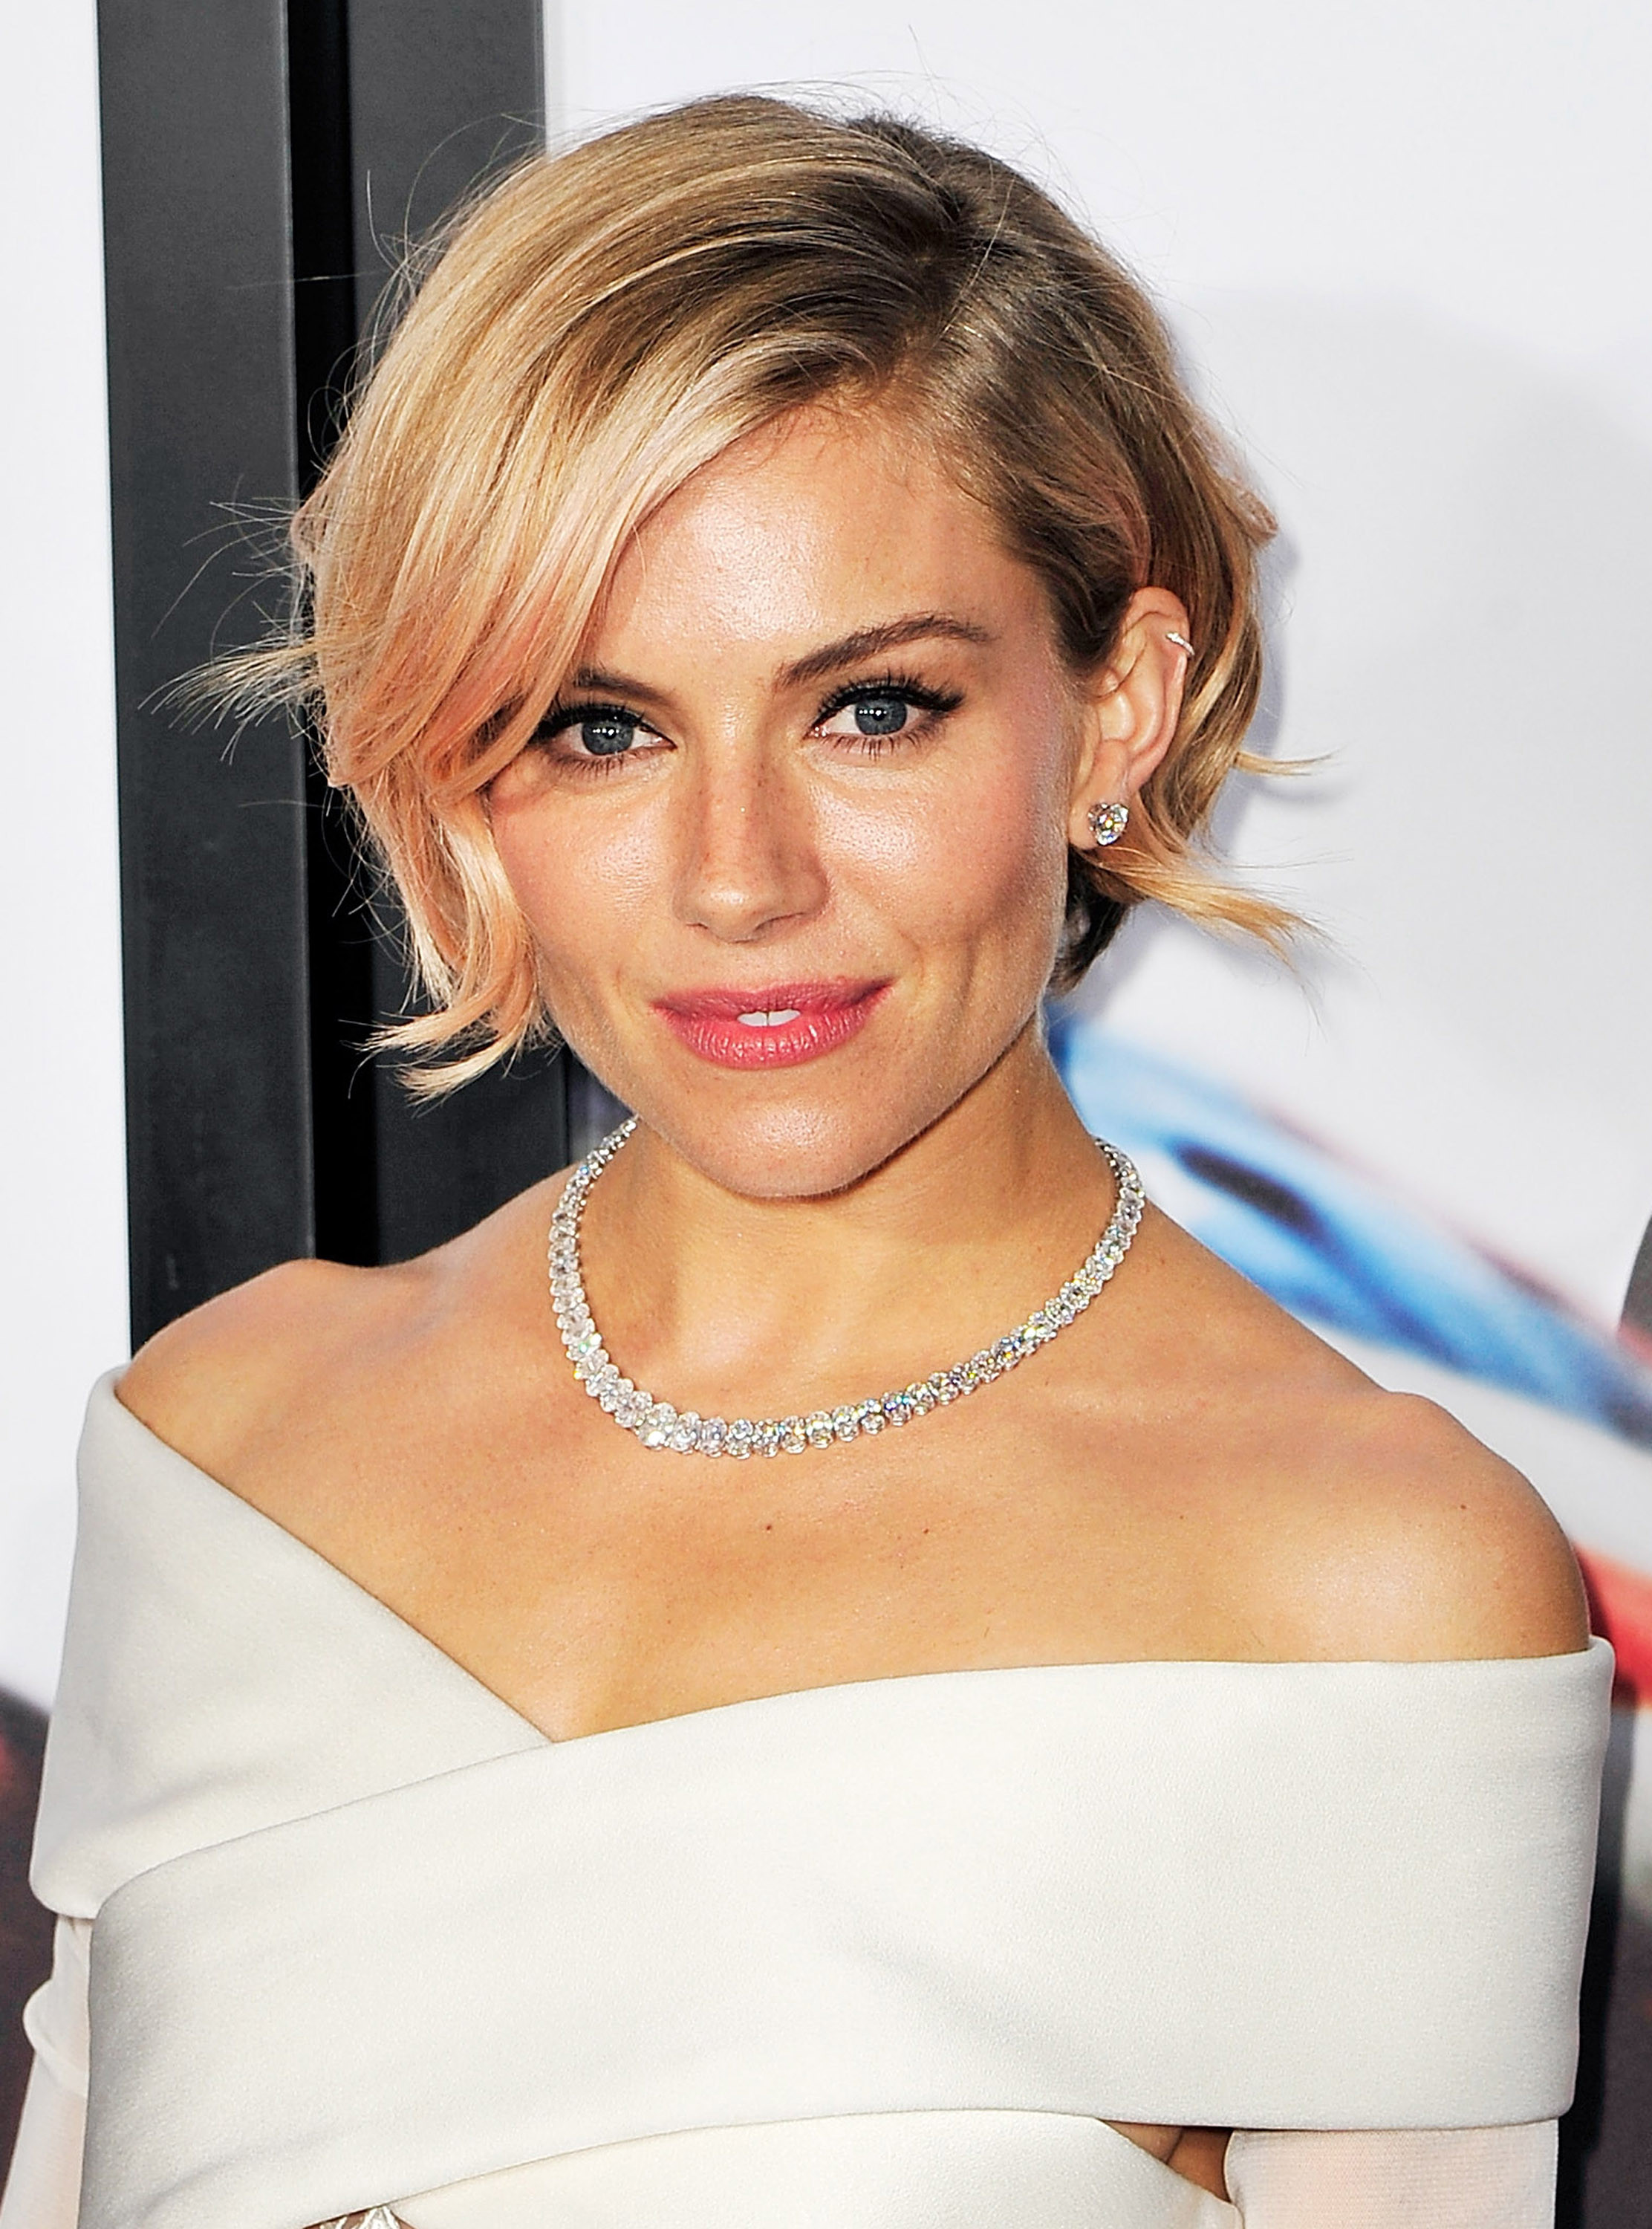 Hairstyles Female  40 Amazing Short Hairstyles For Women